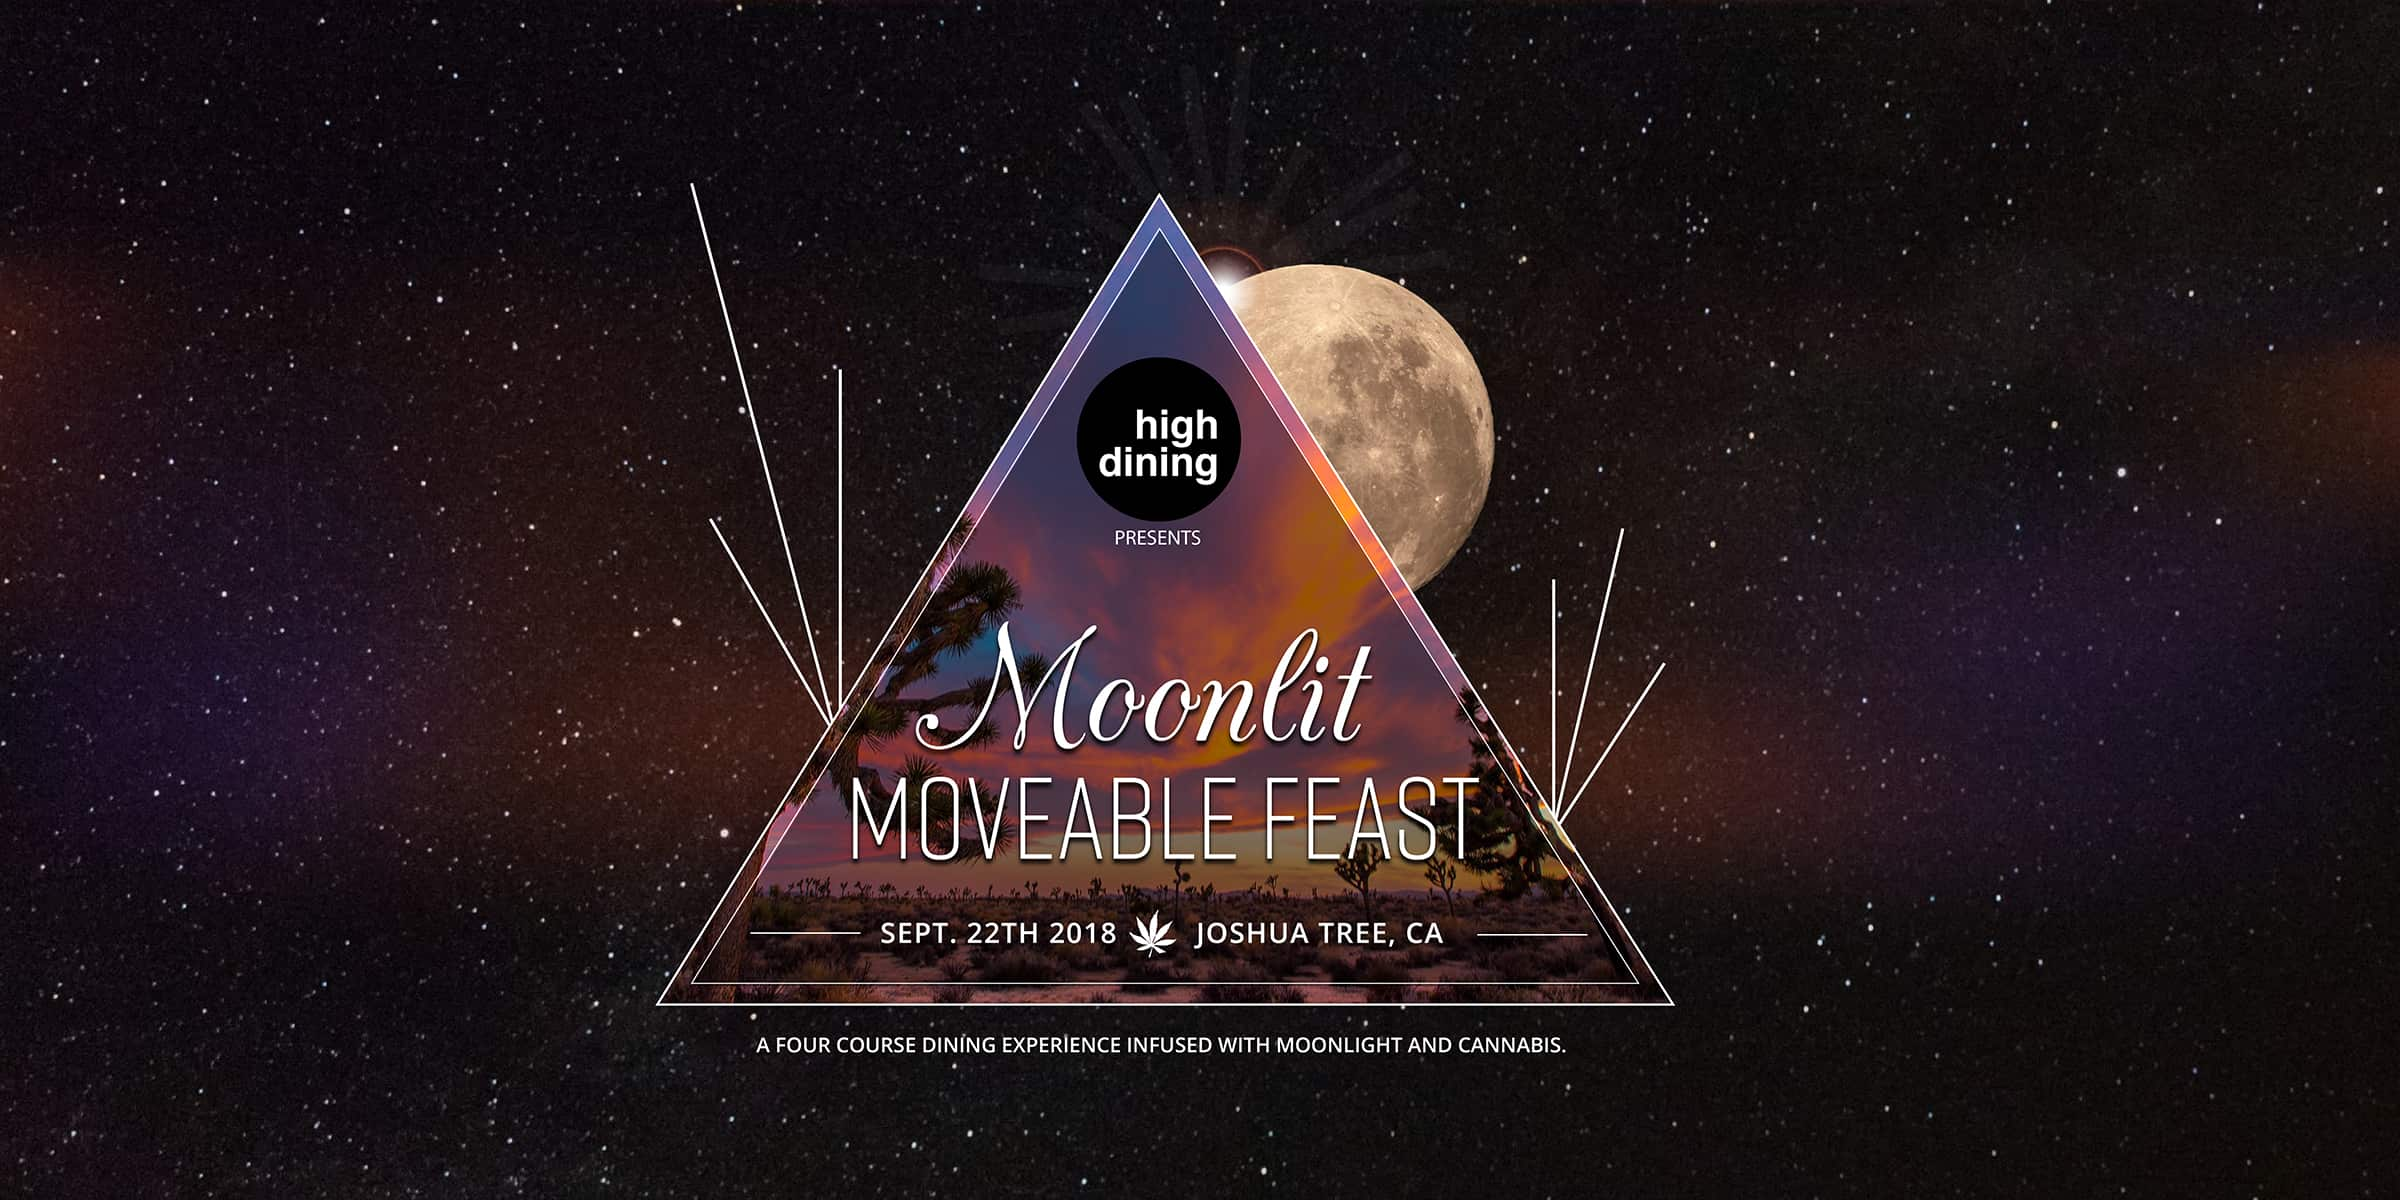 Moonlit Moveable Feast